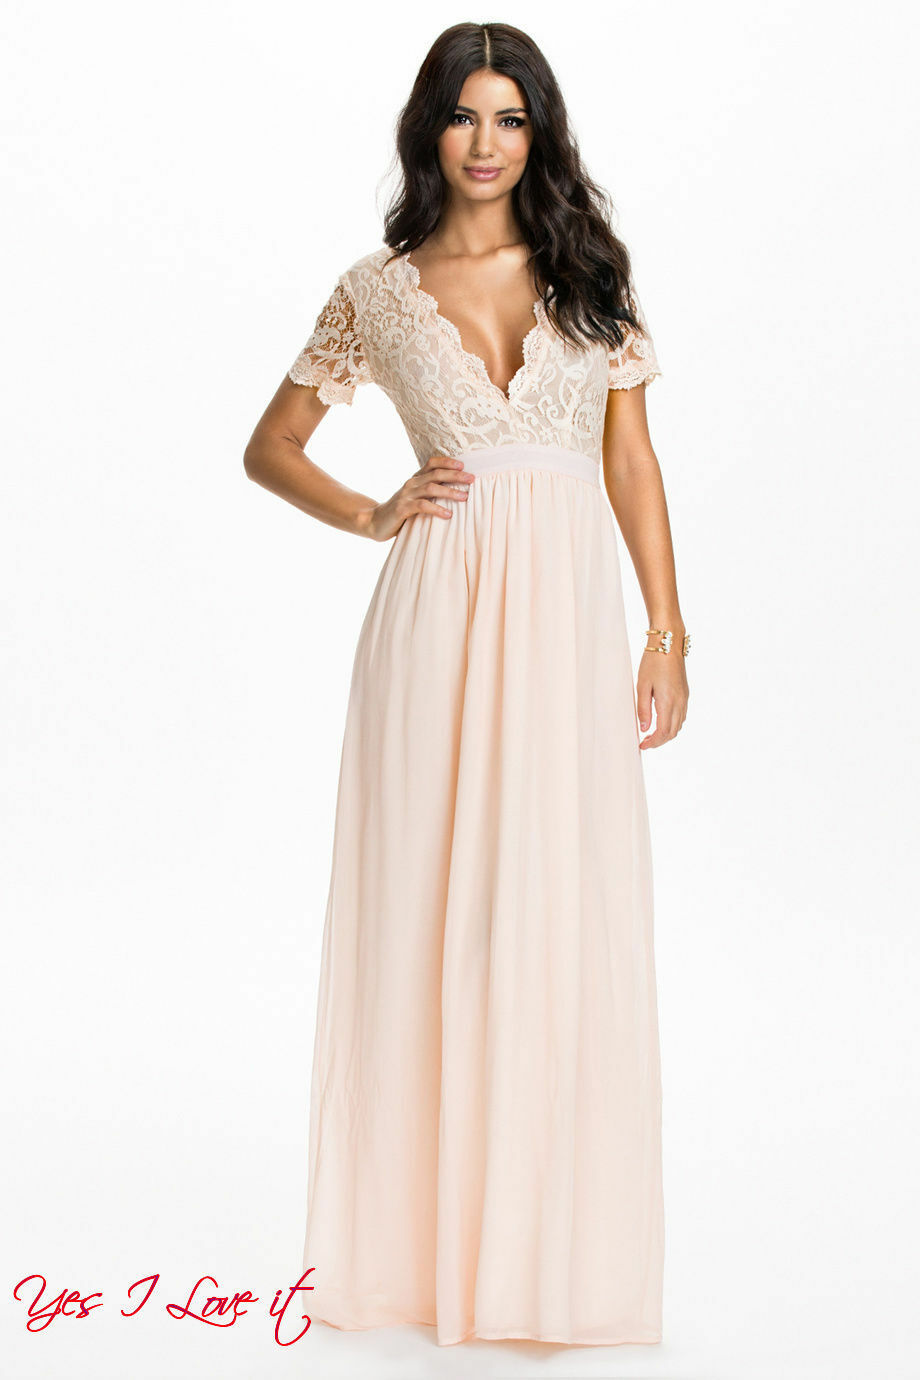 b31480c4a567be Club L Scalloped Lace Maxi Party Cocktail Dress Light Peach UK10 EU38  Evening nwaokh8859-neue Kleidung